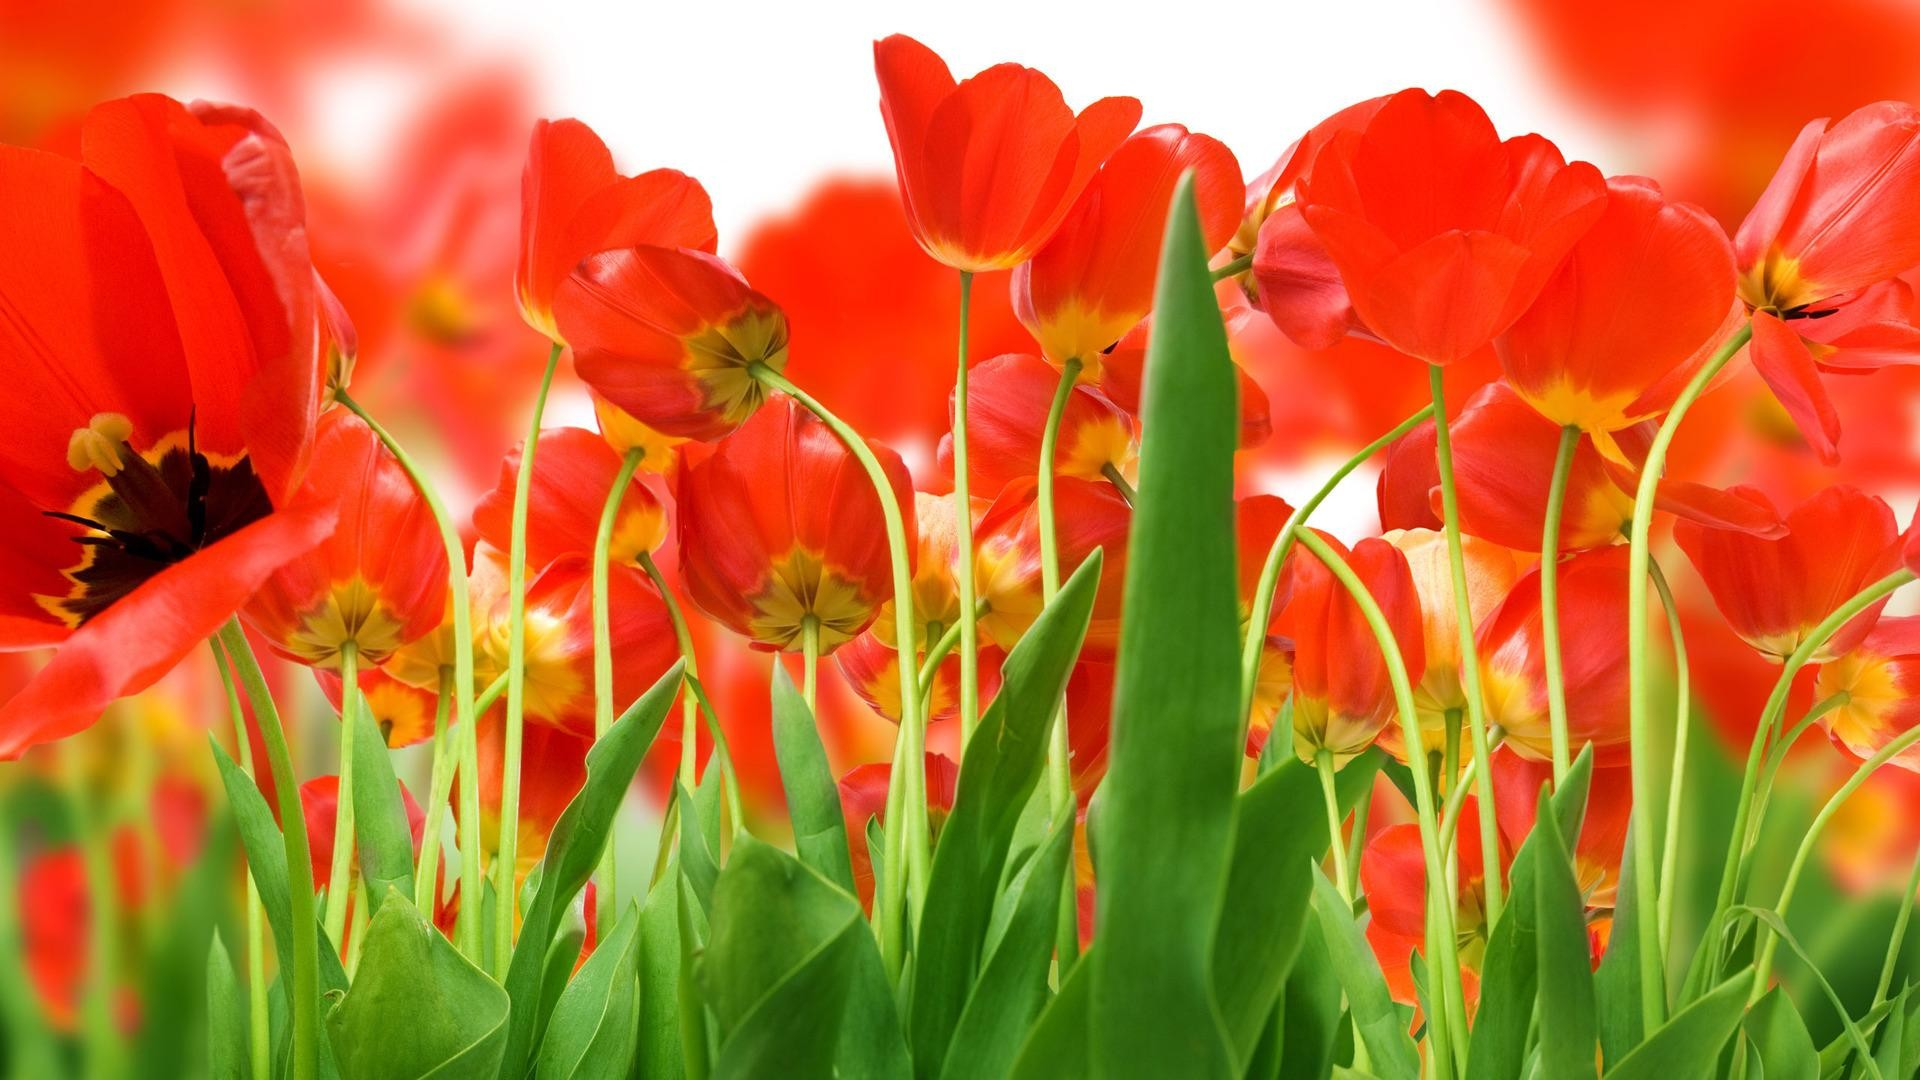 Res: 1920x1080, red flower wallpaper hd #1045085